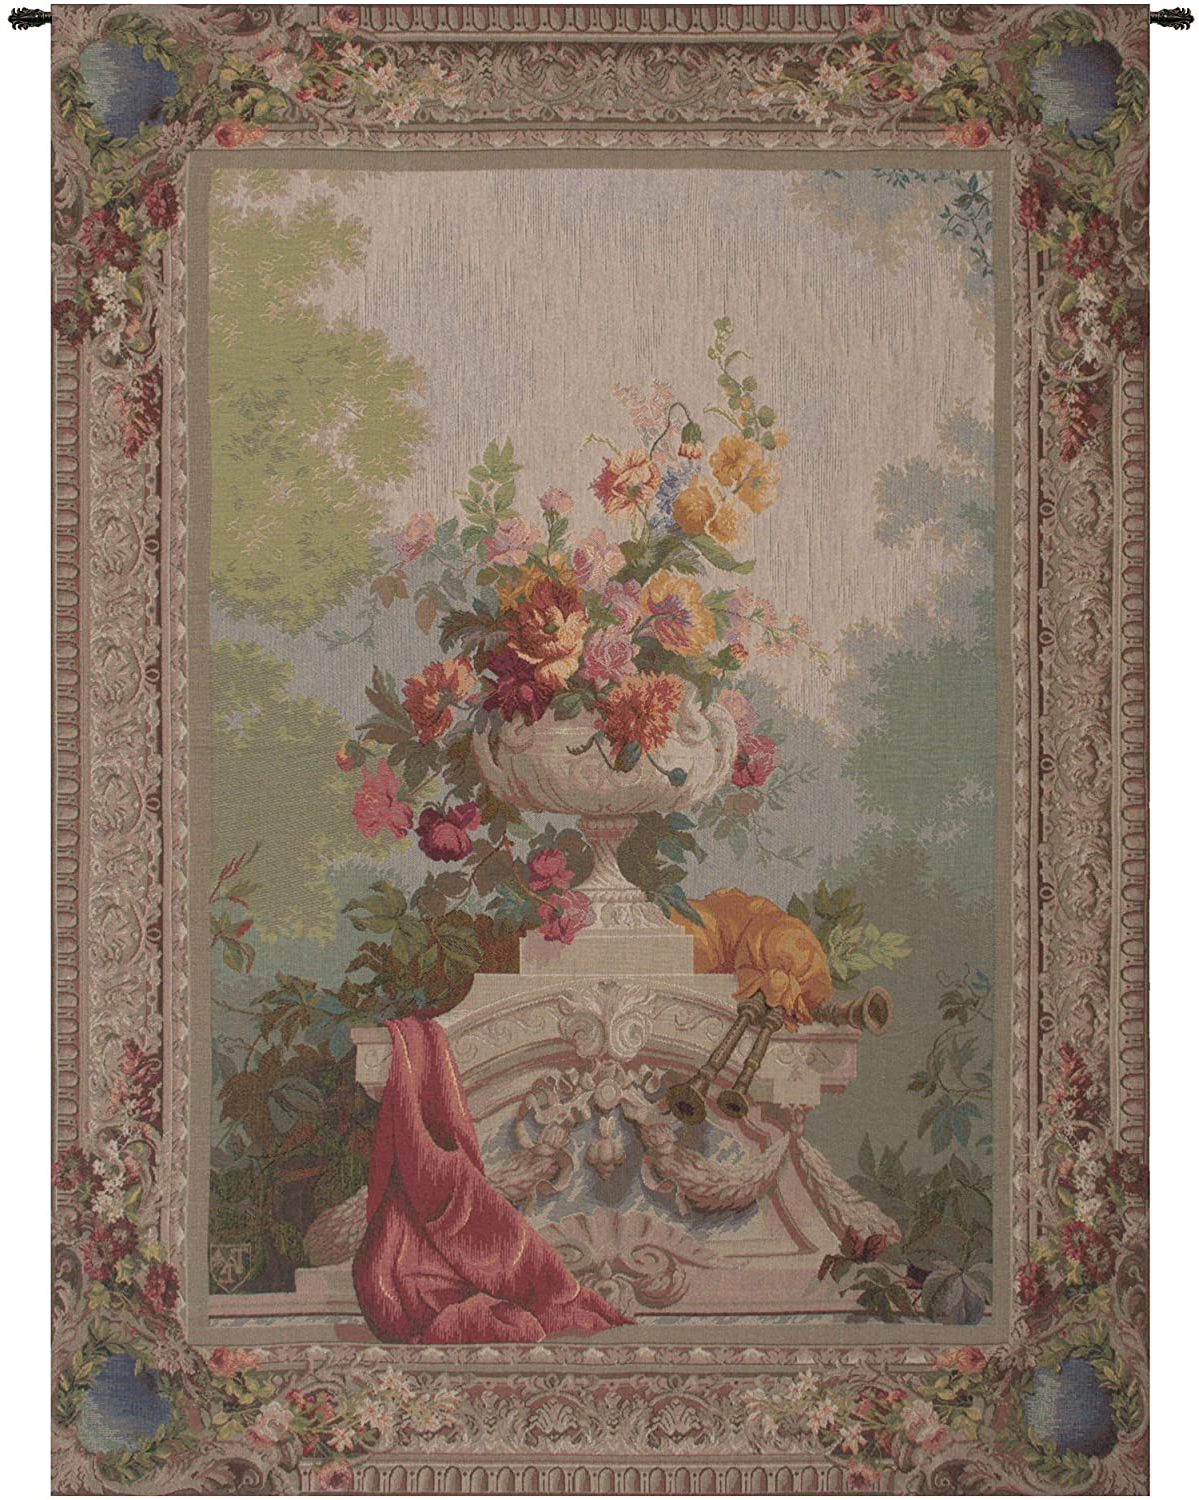 Blended Fabric Classic French Rococo Woven Tapestries Inside Most Up To Date Charlotte Home Furnishings Inc (View 9 of 20)